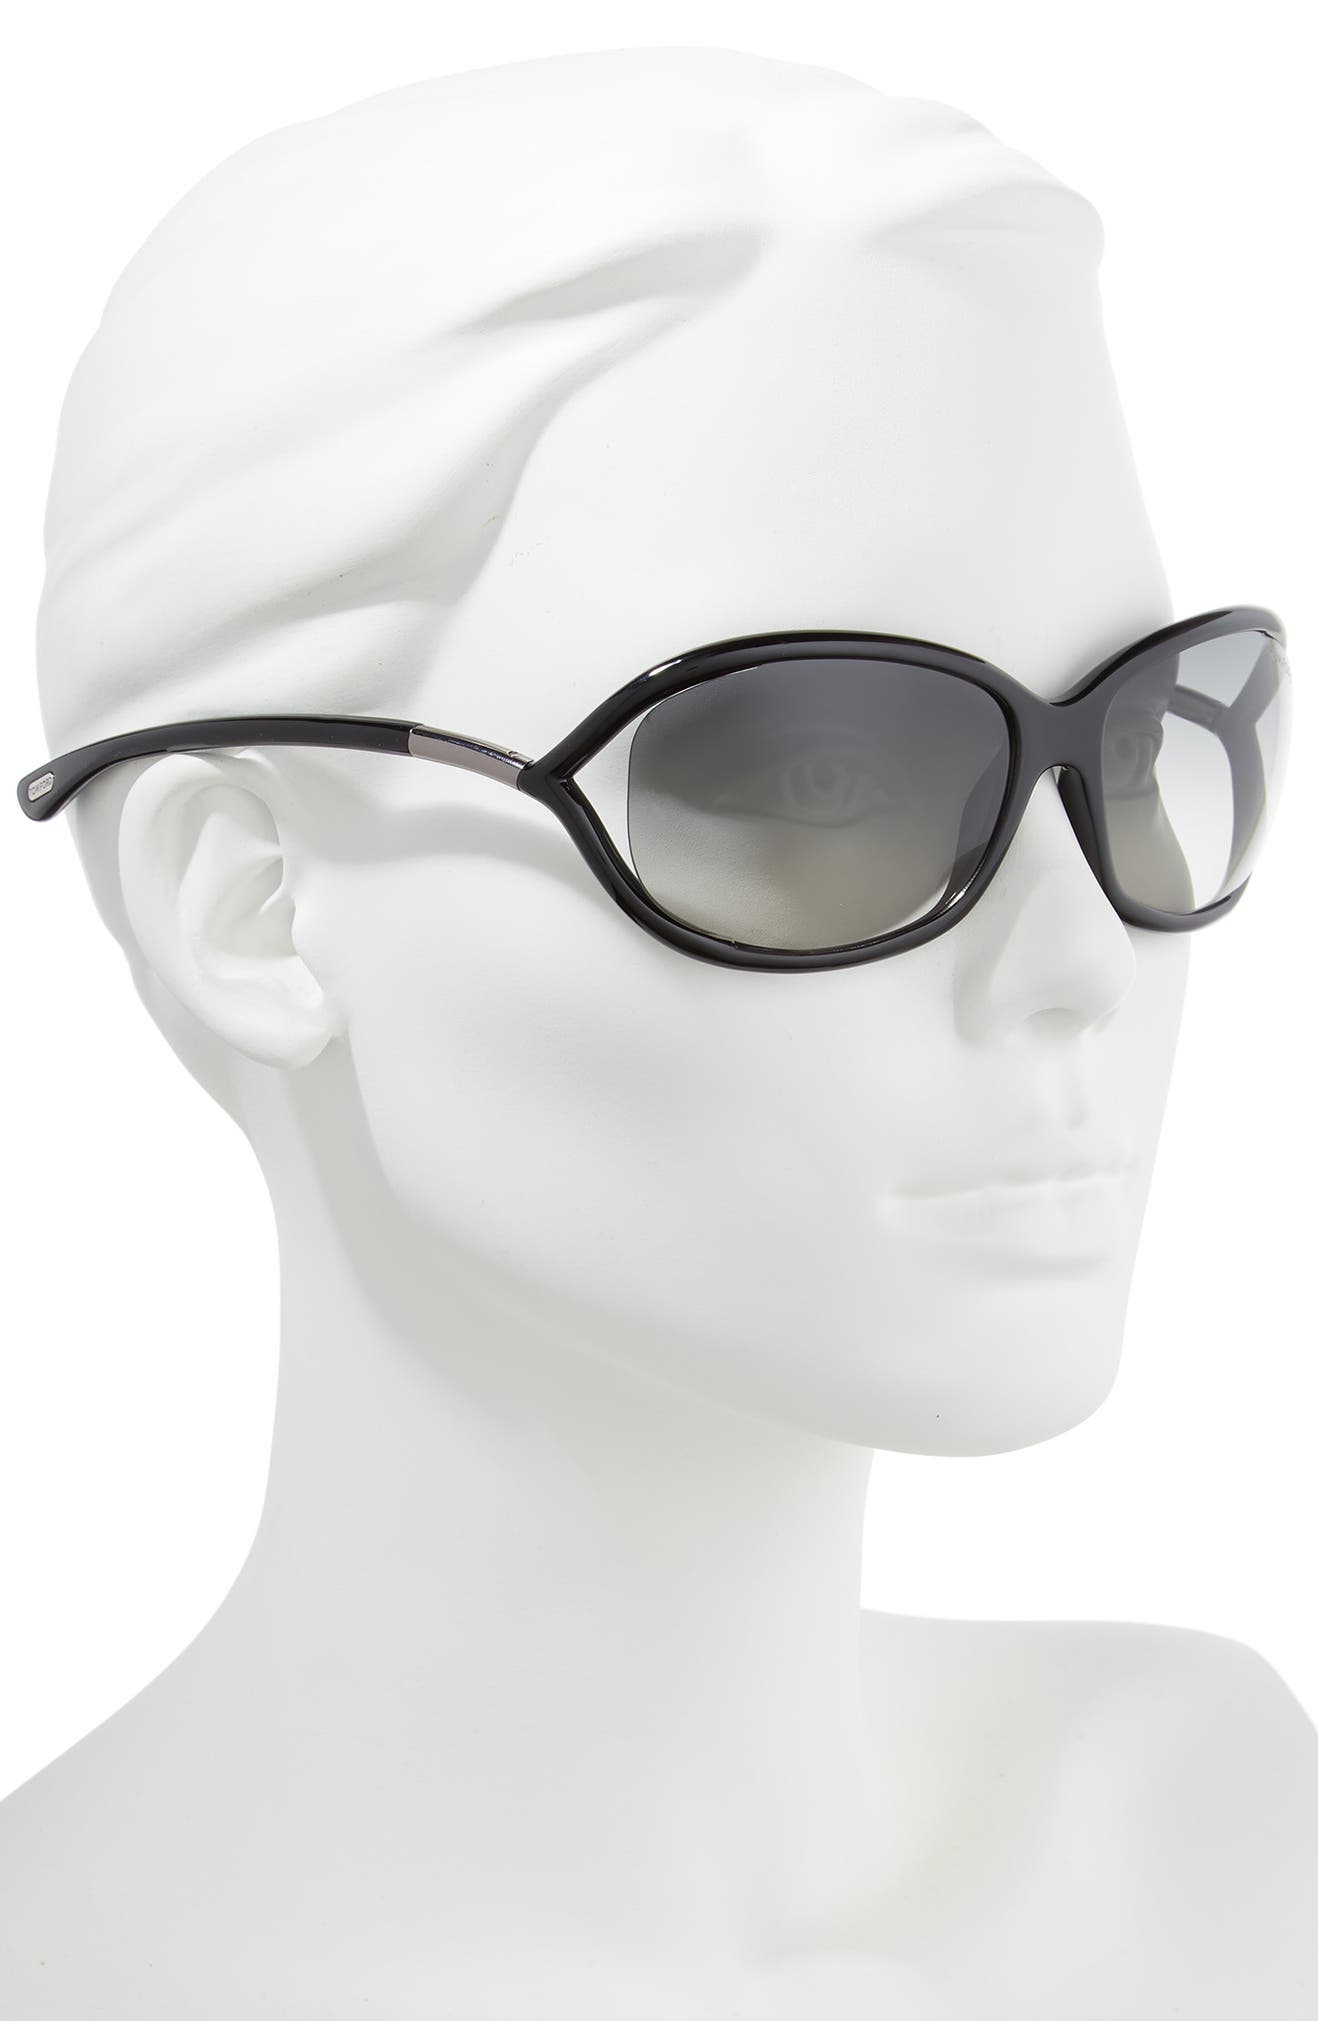 56fdcc4d171 Tom Ford  Jennifer  61mm Oval Oversize Frame Sunglasses